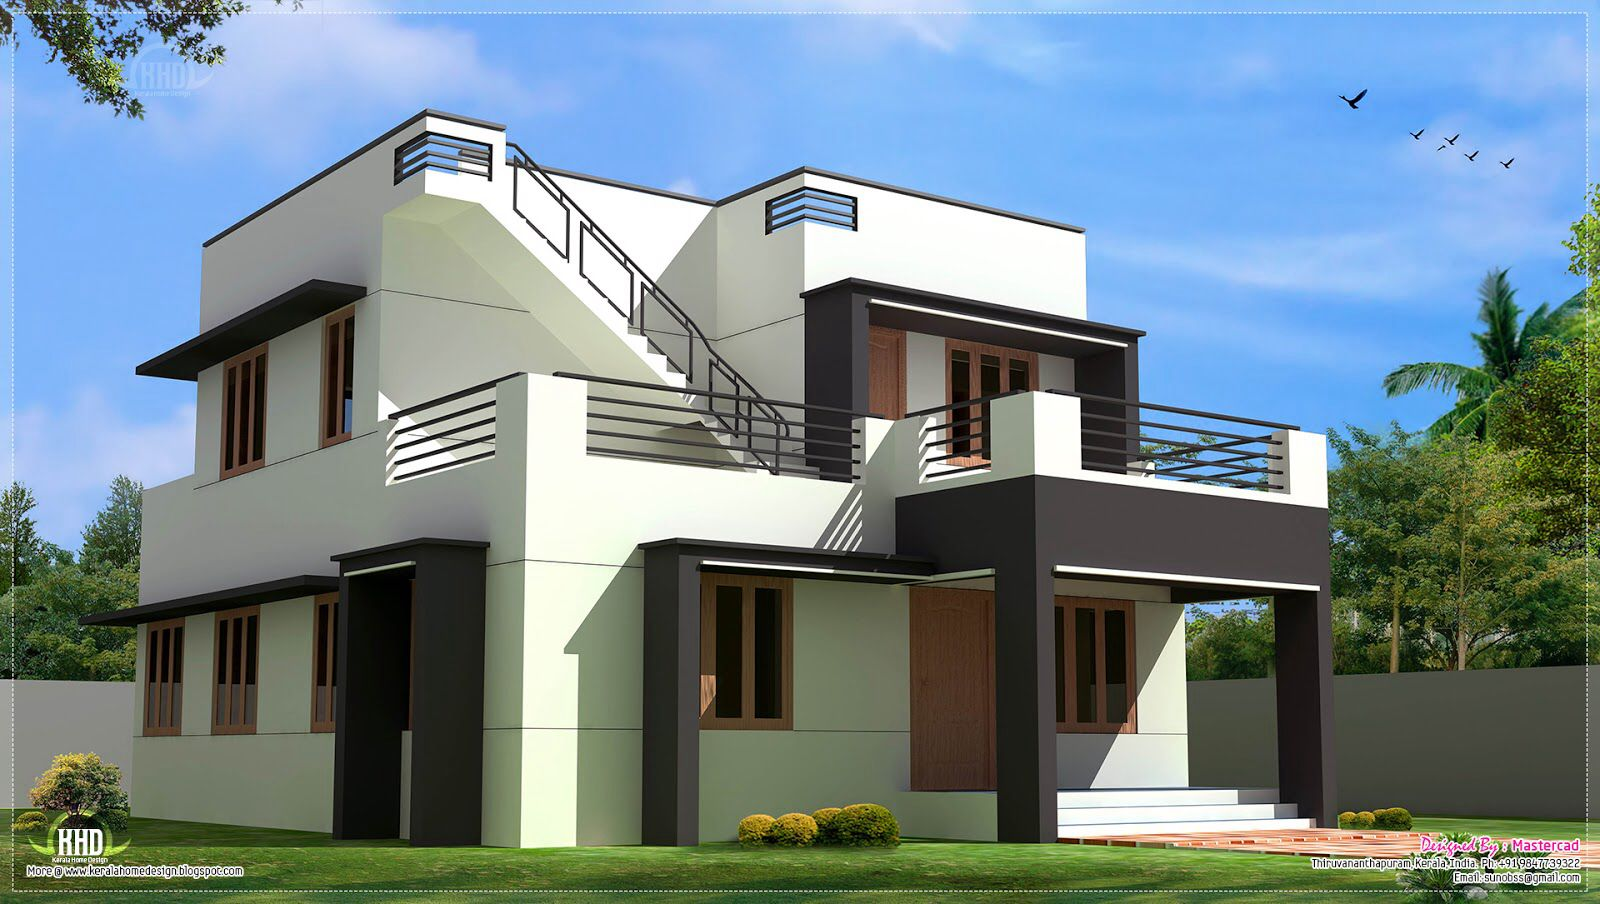 Home Design Indian Homes Pinterest Modern Architecture